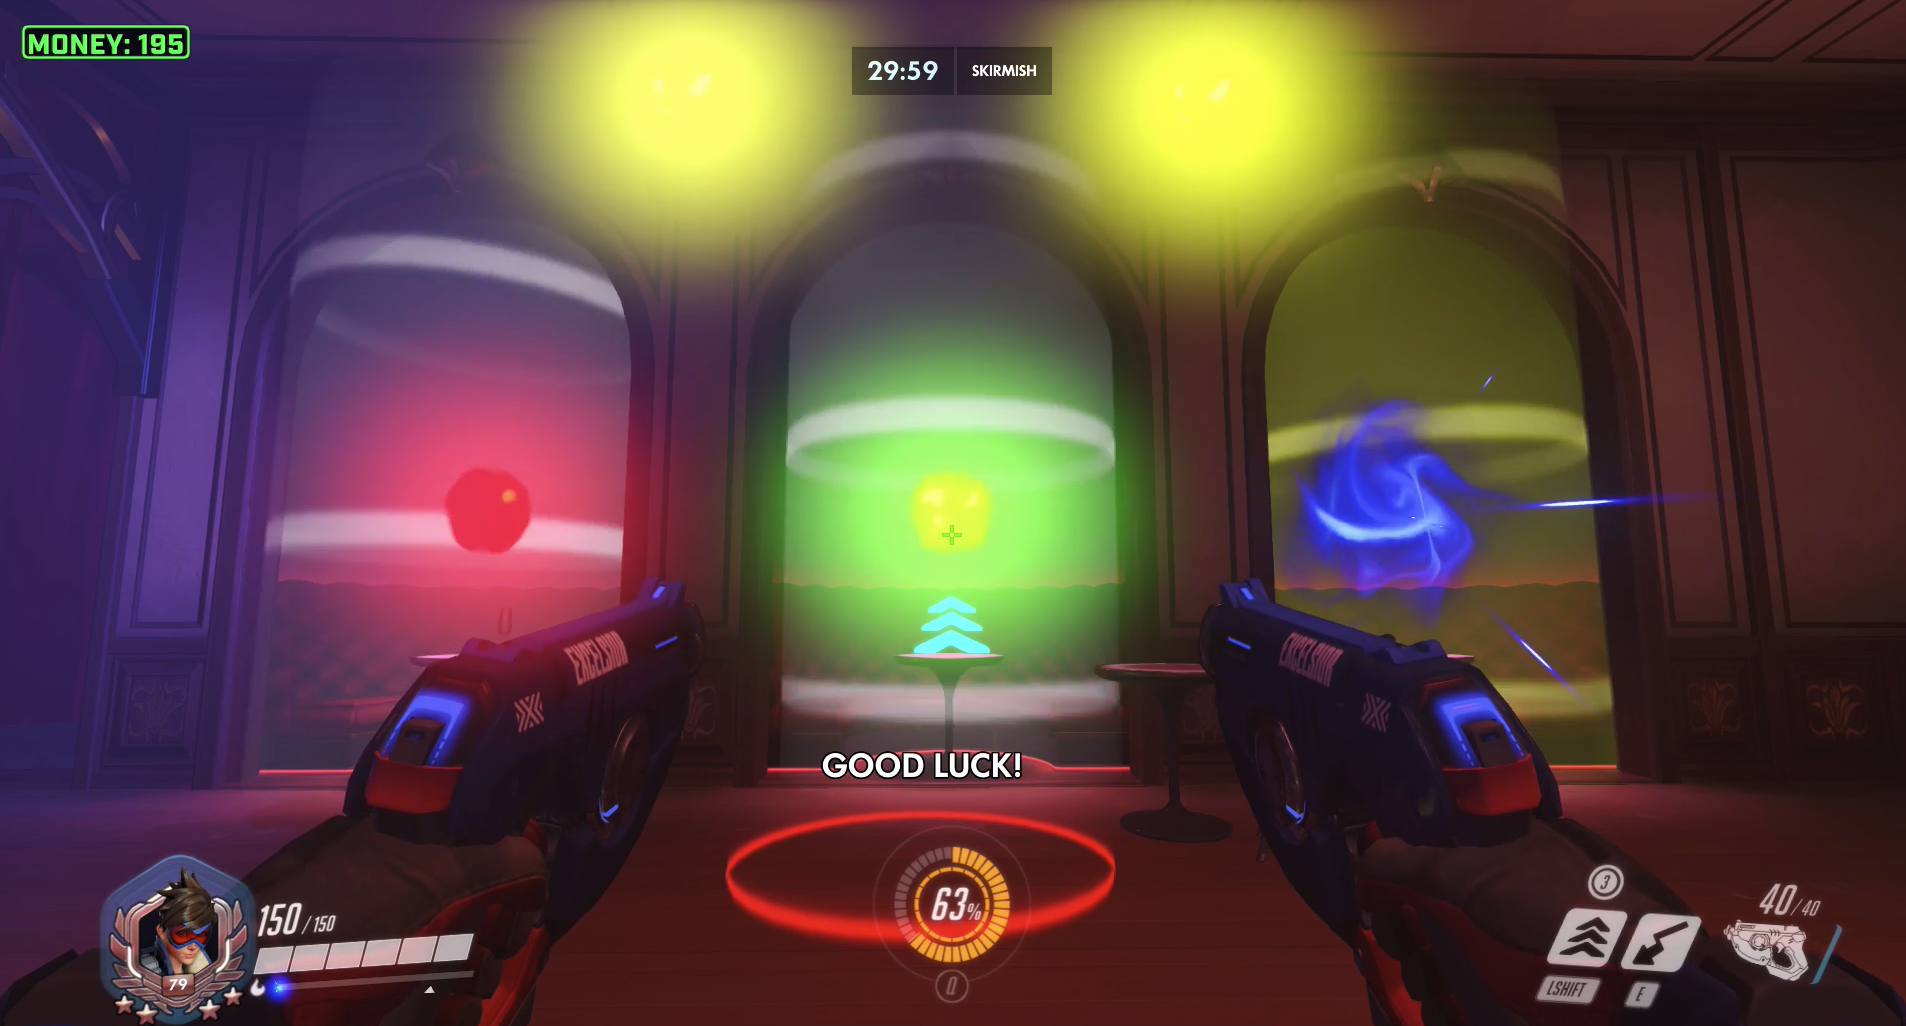 Overwatch Workshop: 5 of the Most Creative Mini-Games We've